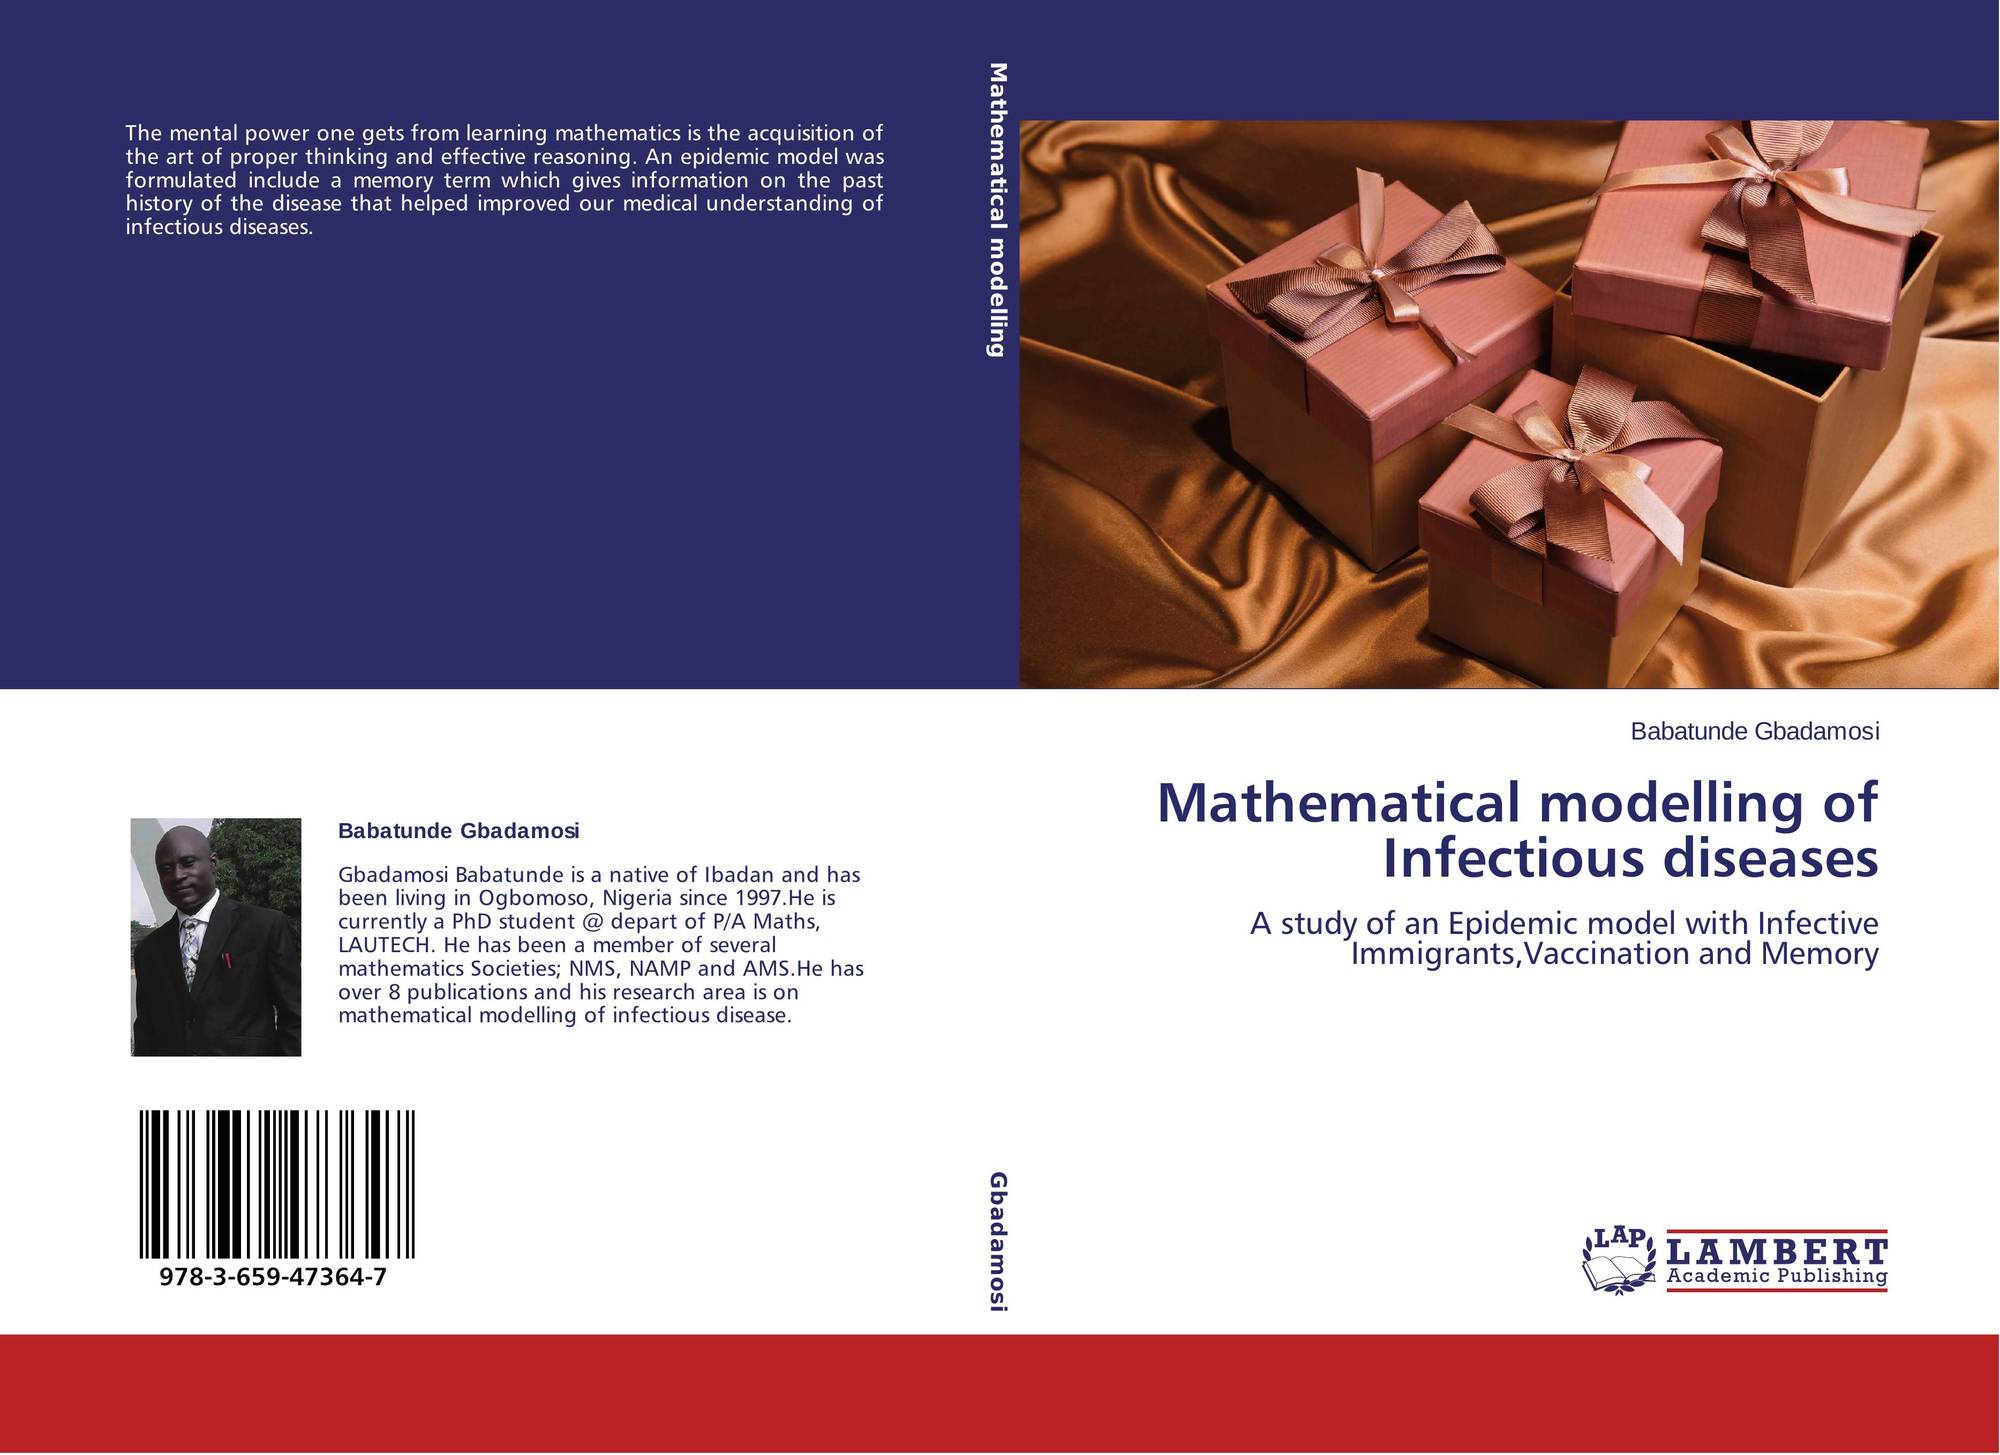 Mathematical modelling of Infectious diseases, 978-3-659